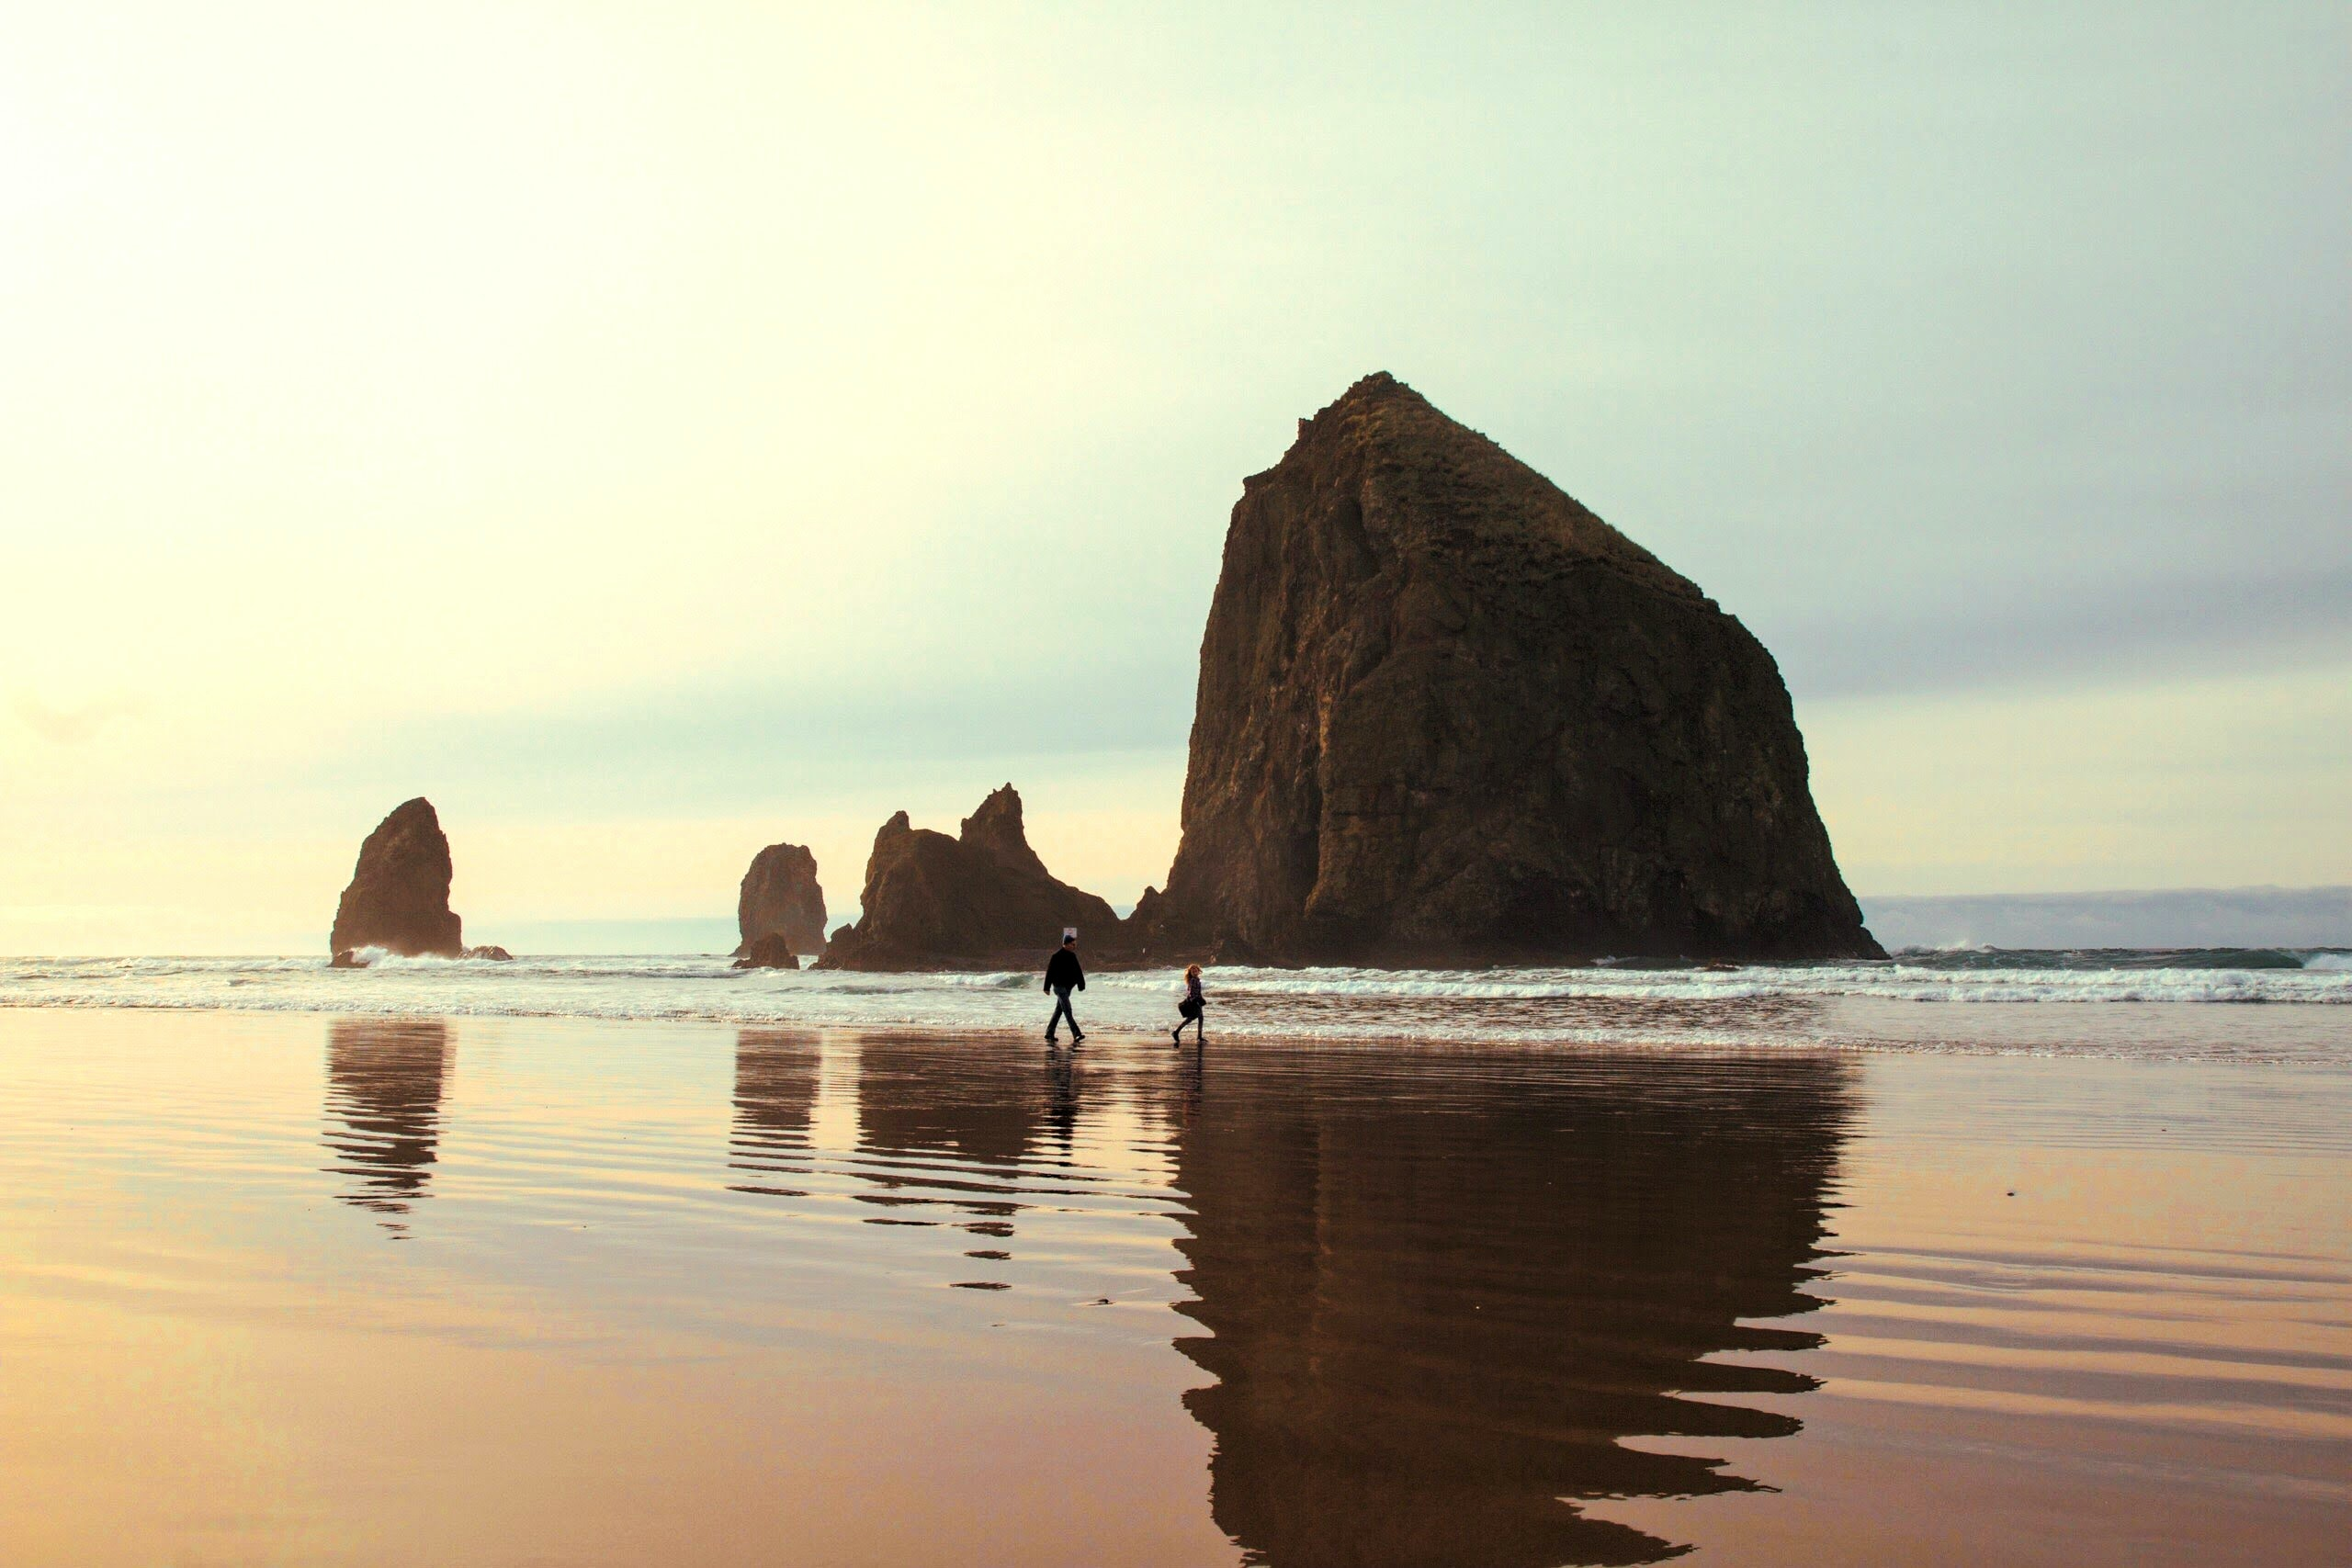 People walking along a beach with a rock formation being reflected in the perfectly clear and still water